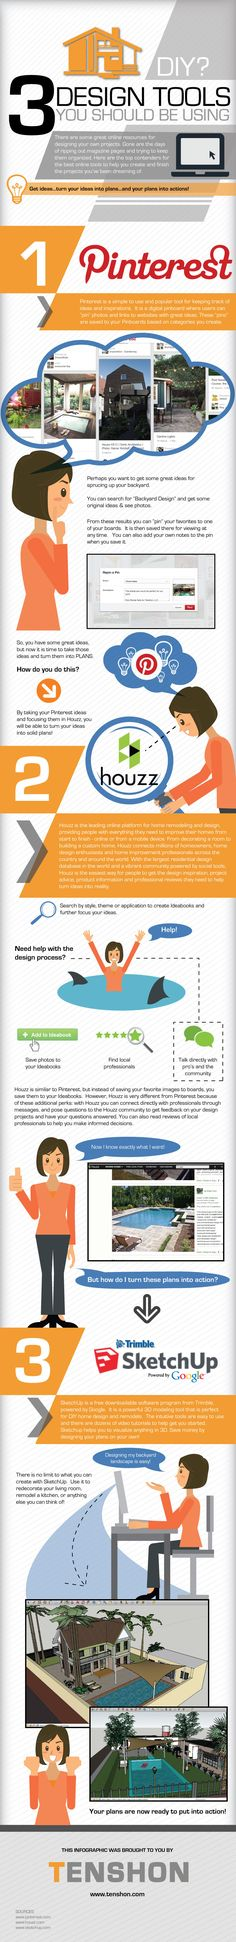 3 Best Home Designing Tools You Should Be Using infographic image